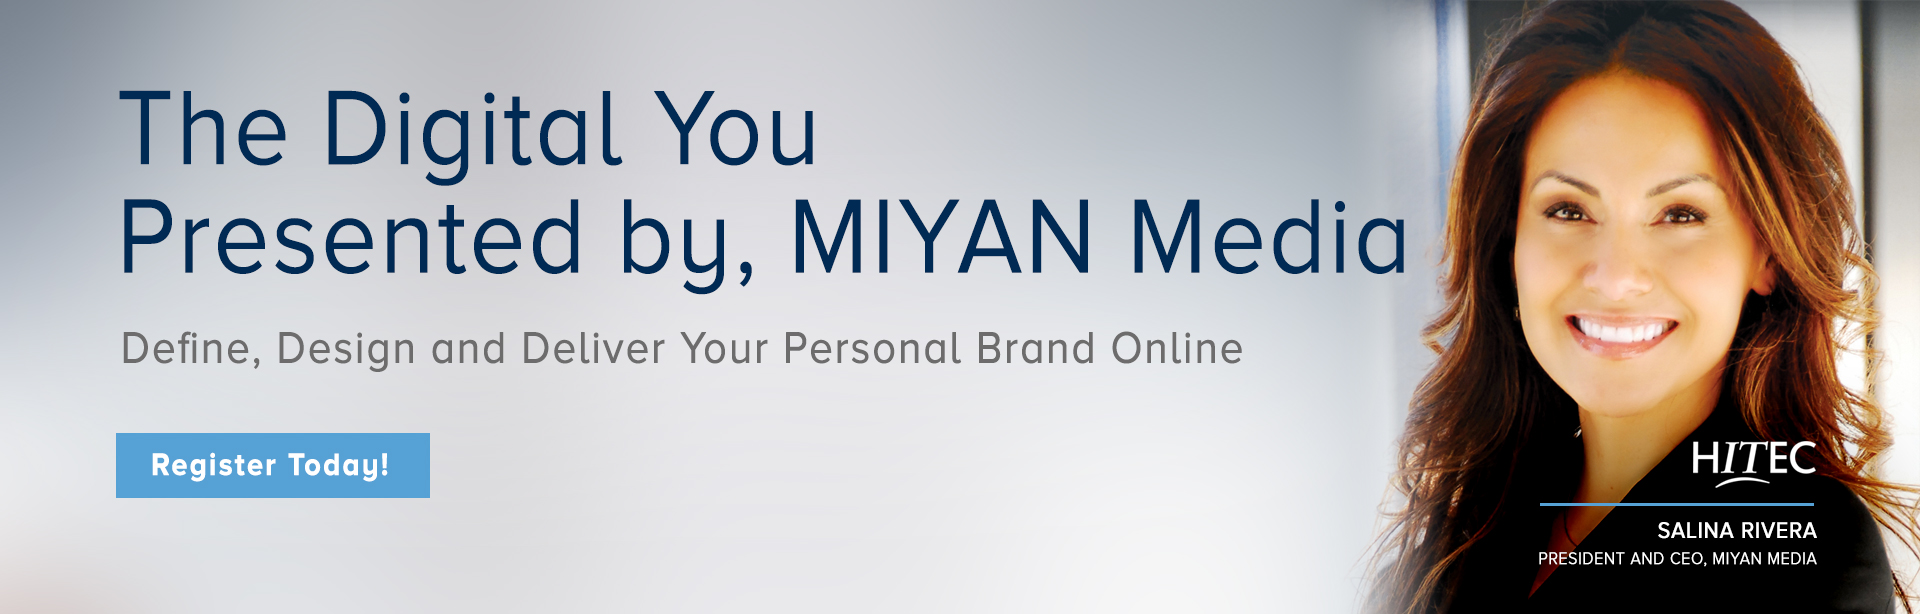 Digital media marketing expert, Salina Rivera, CEO, MIYAN Media presenting the Digital You